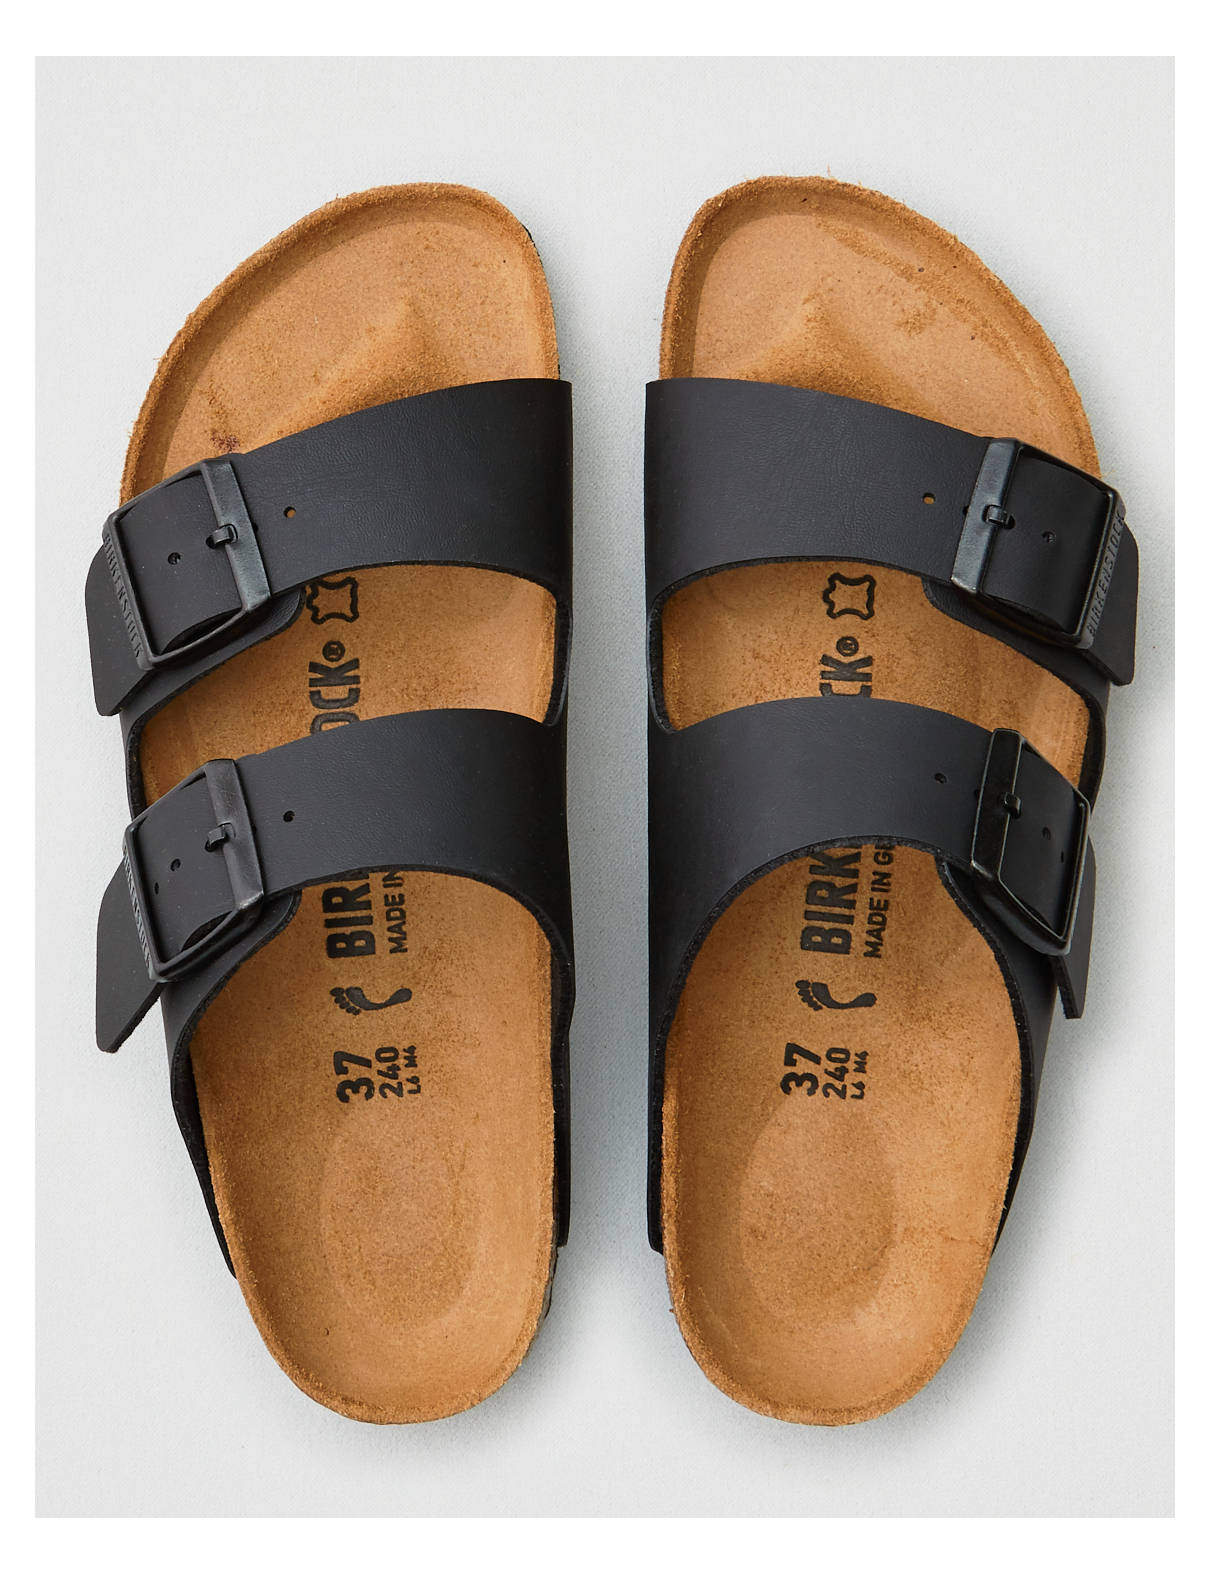 Birkenstock Arizona Sandal Black American Eagle Outfitters Tendencies Sandals Footbed 2 Strap Brown 42 This Review Is Frombirkenstock